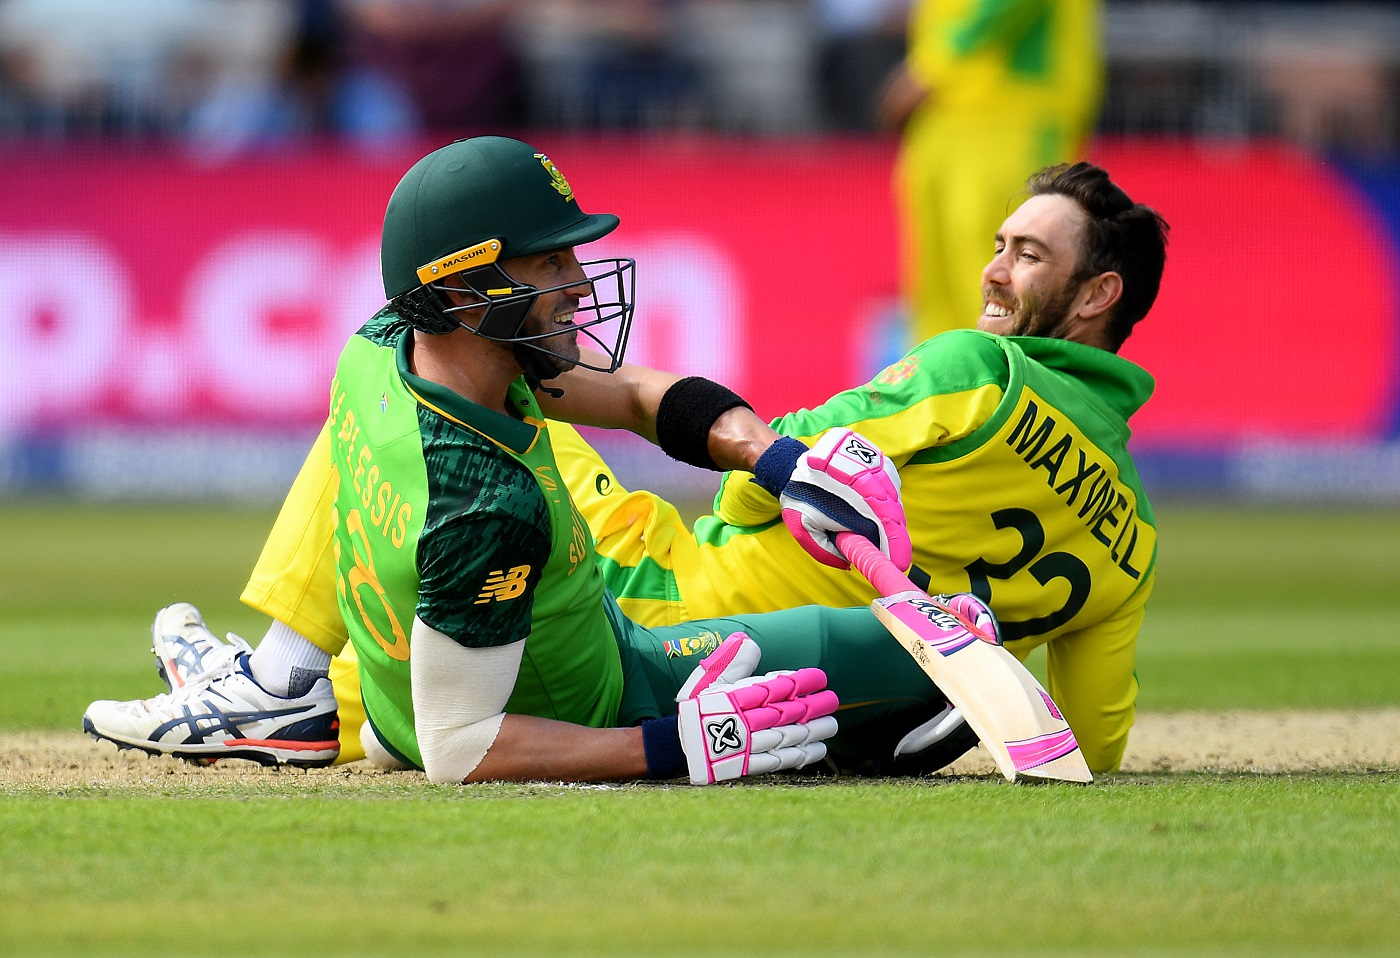 Faf du Plessis and Glenn Maxwell see the hilarity in the situation after  getting into a tangle | Photo | Global | ESPNcricinfo.com